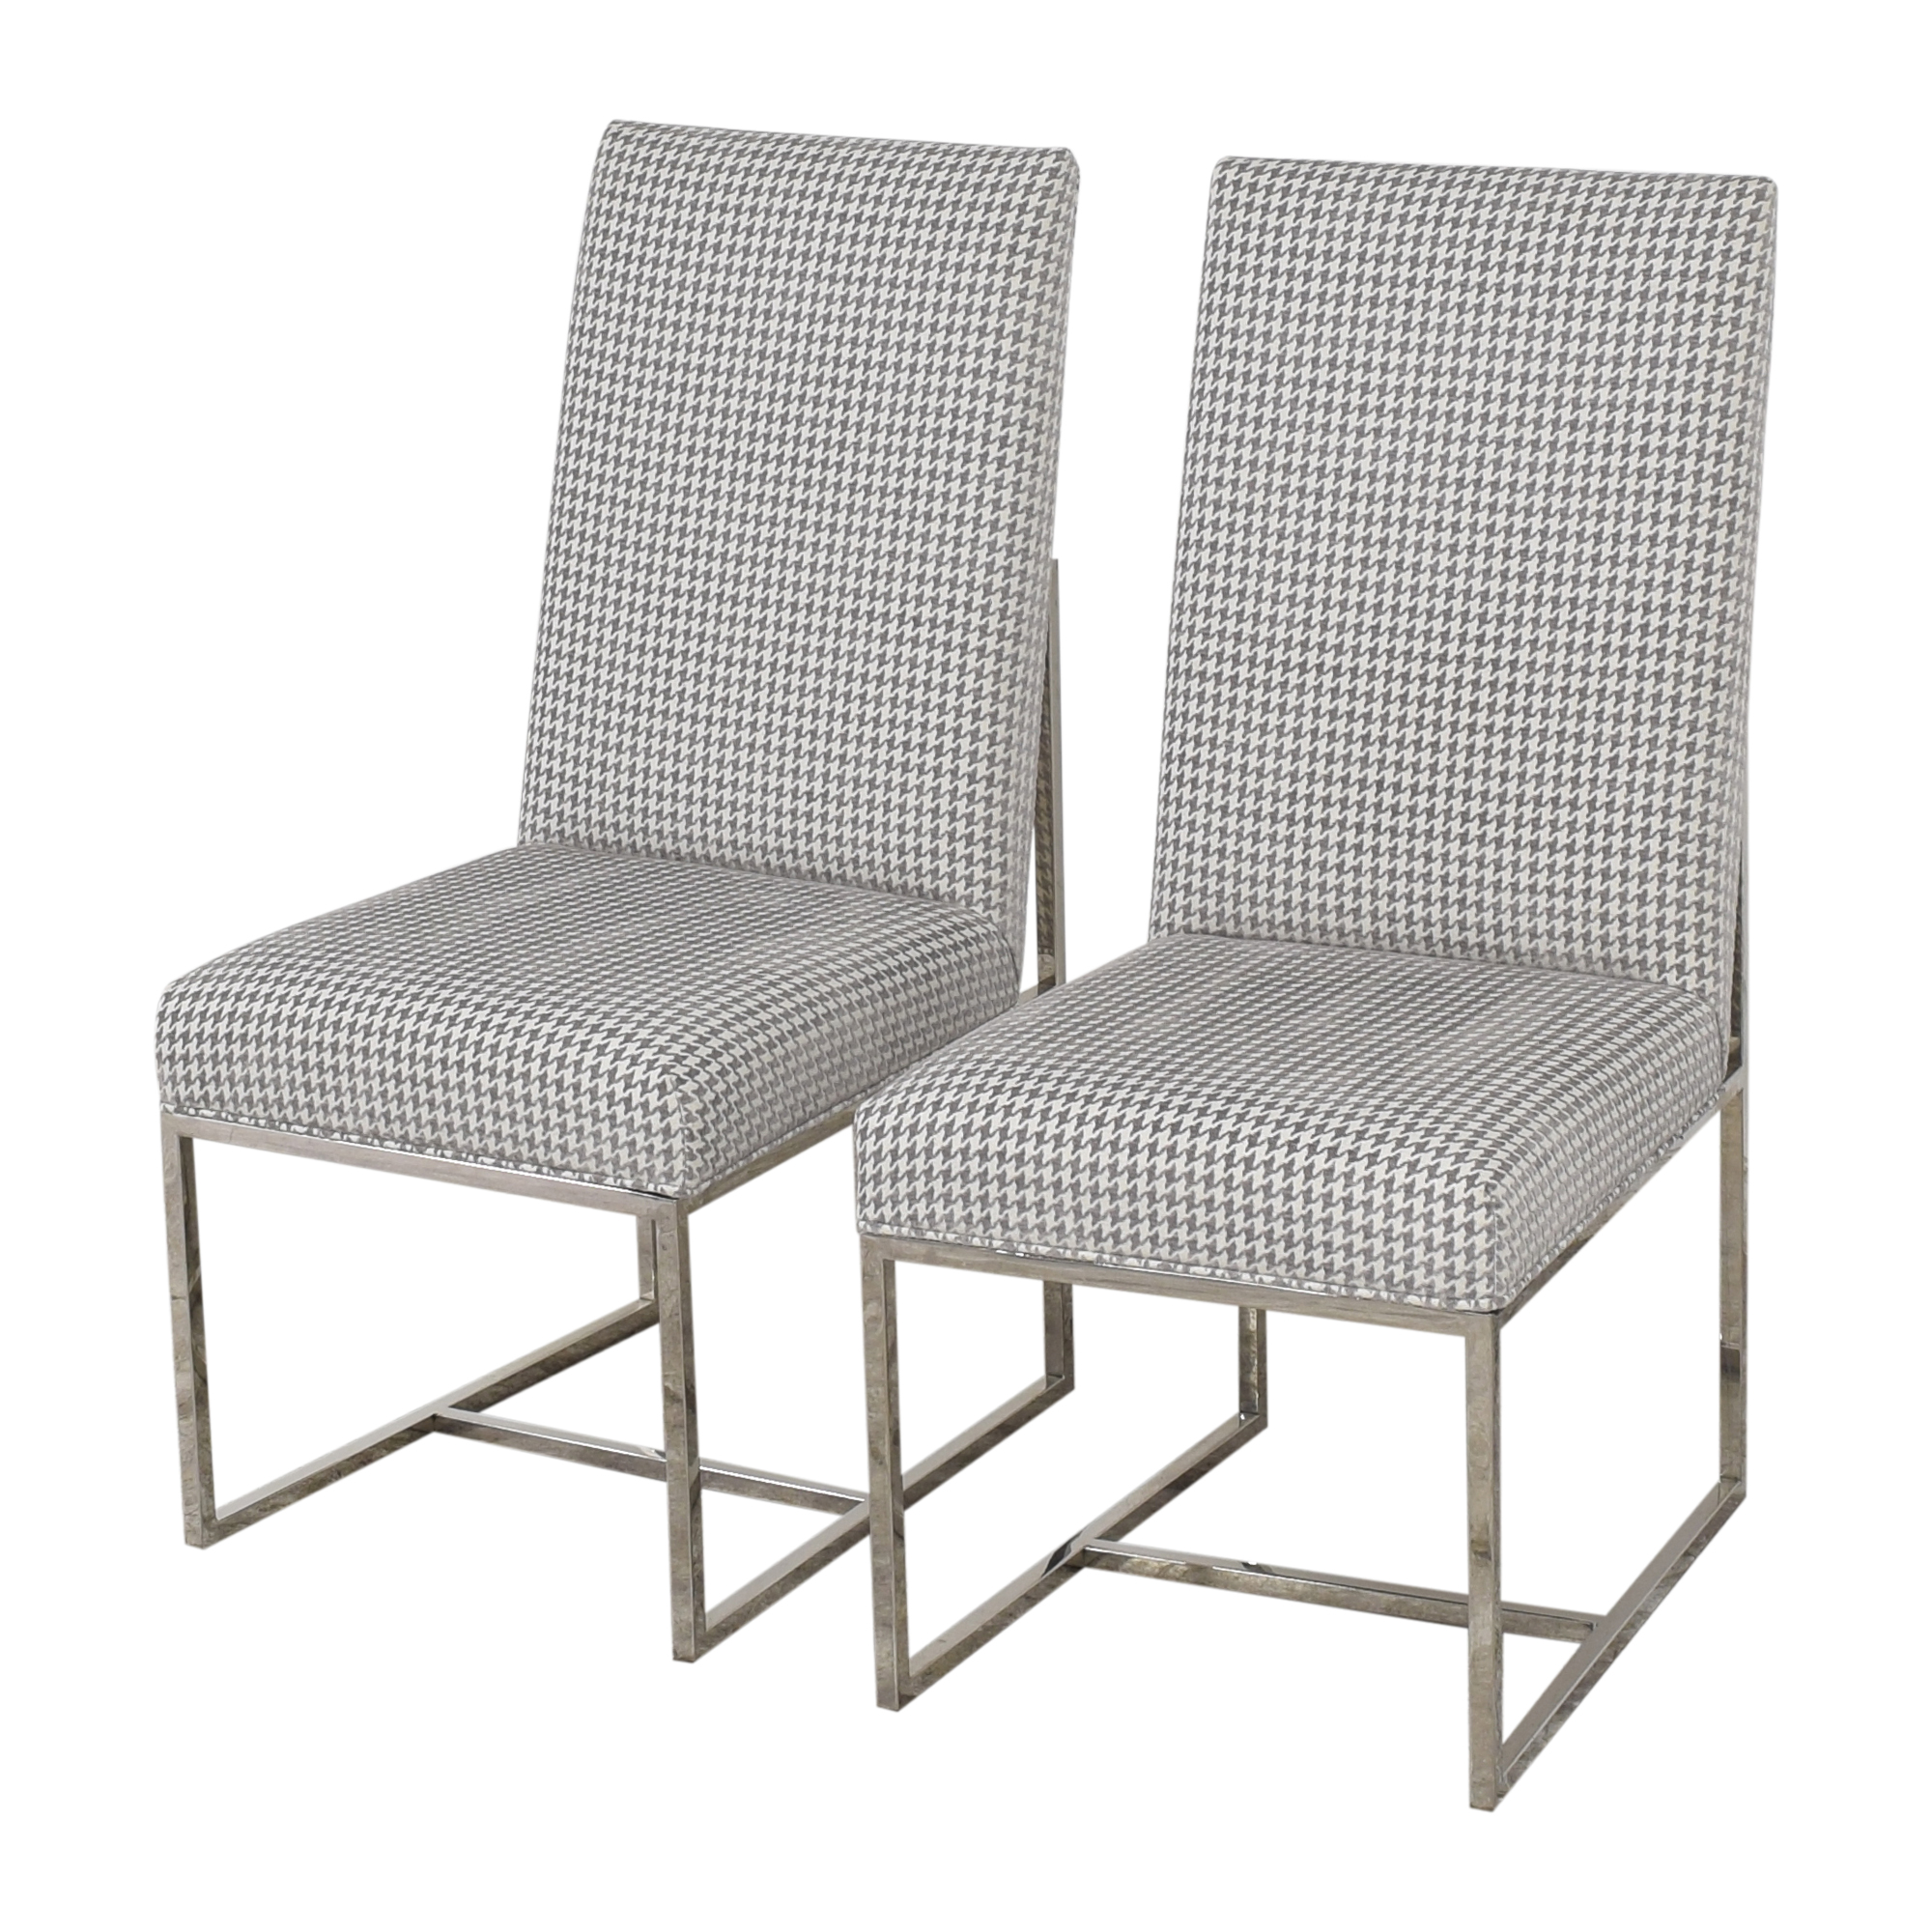 Mitchell Gold + Bob Williams Mitchell Gold + Bob Williams Gage Tall Dining Chairs Chairs